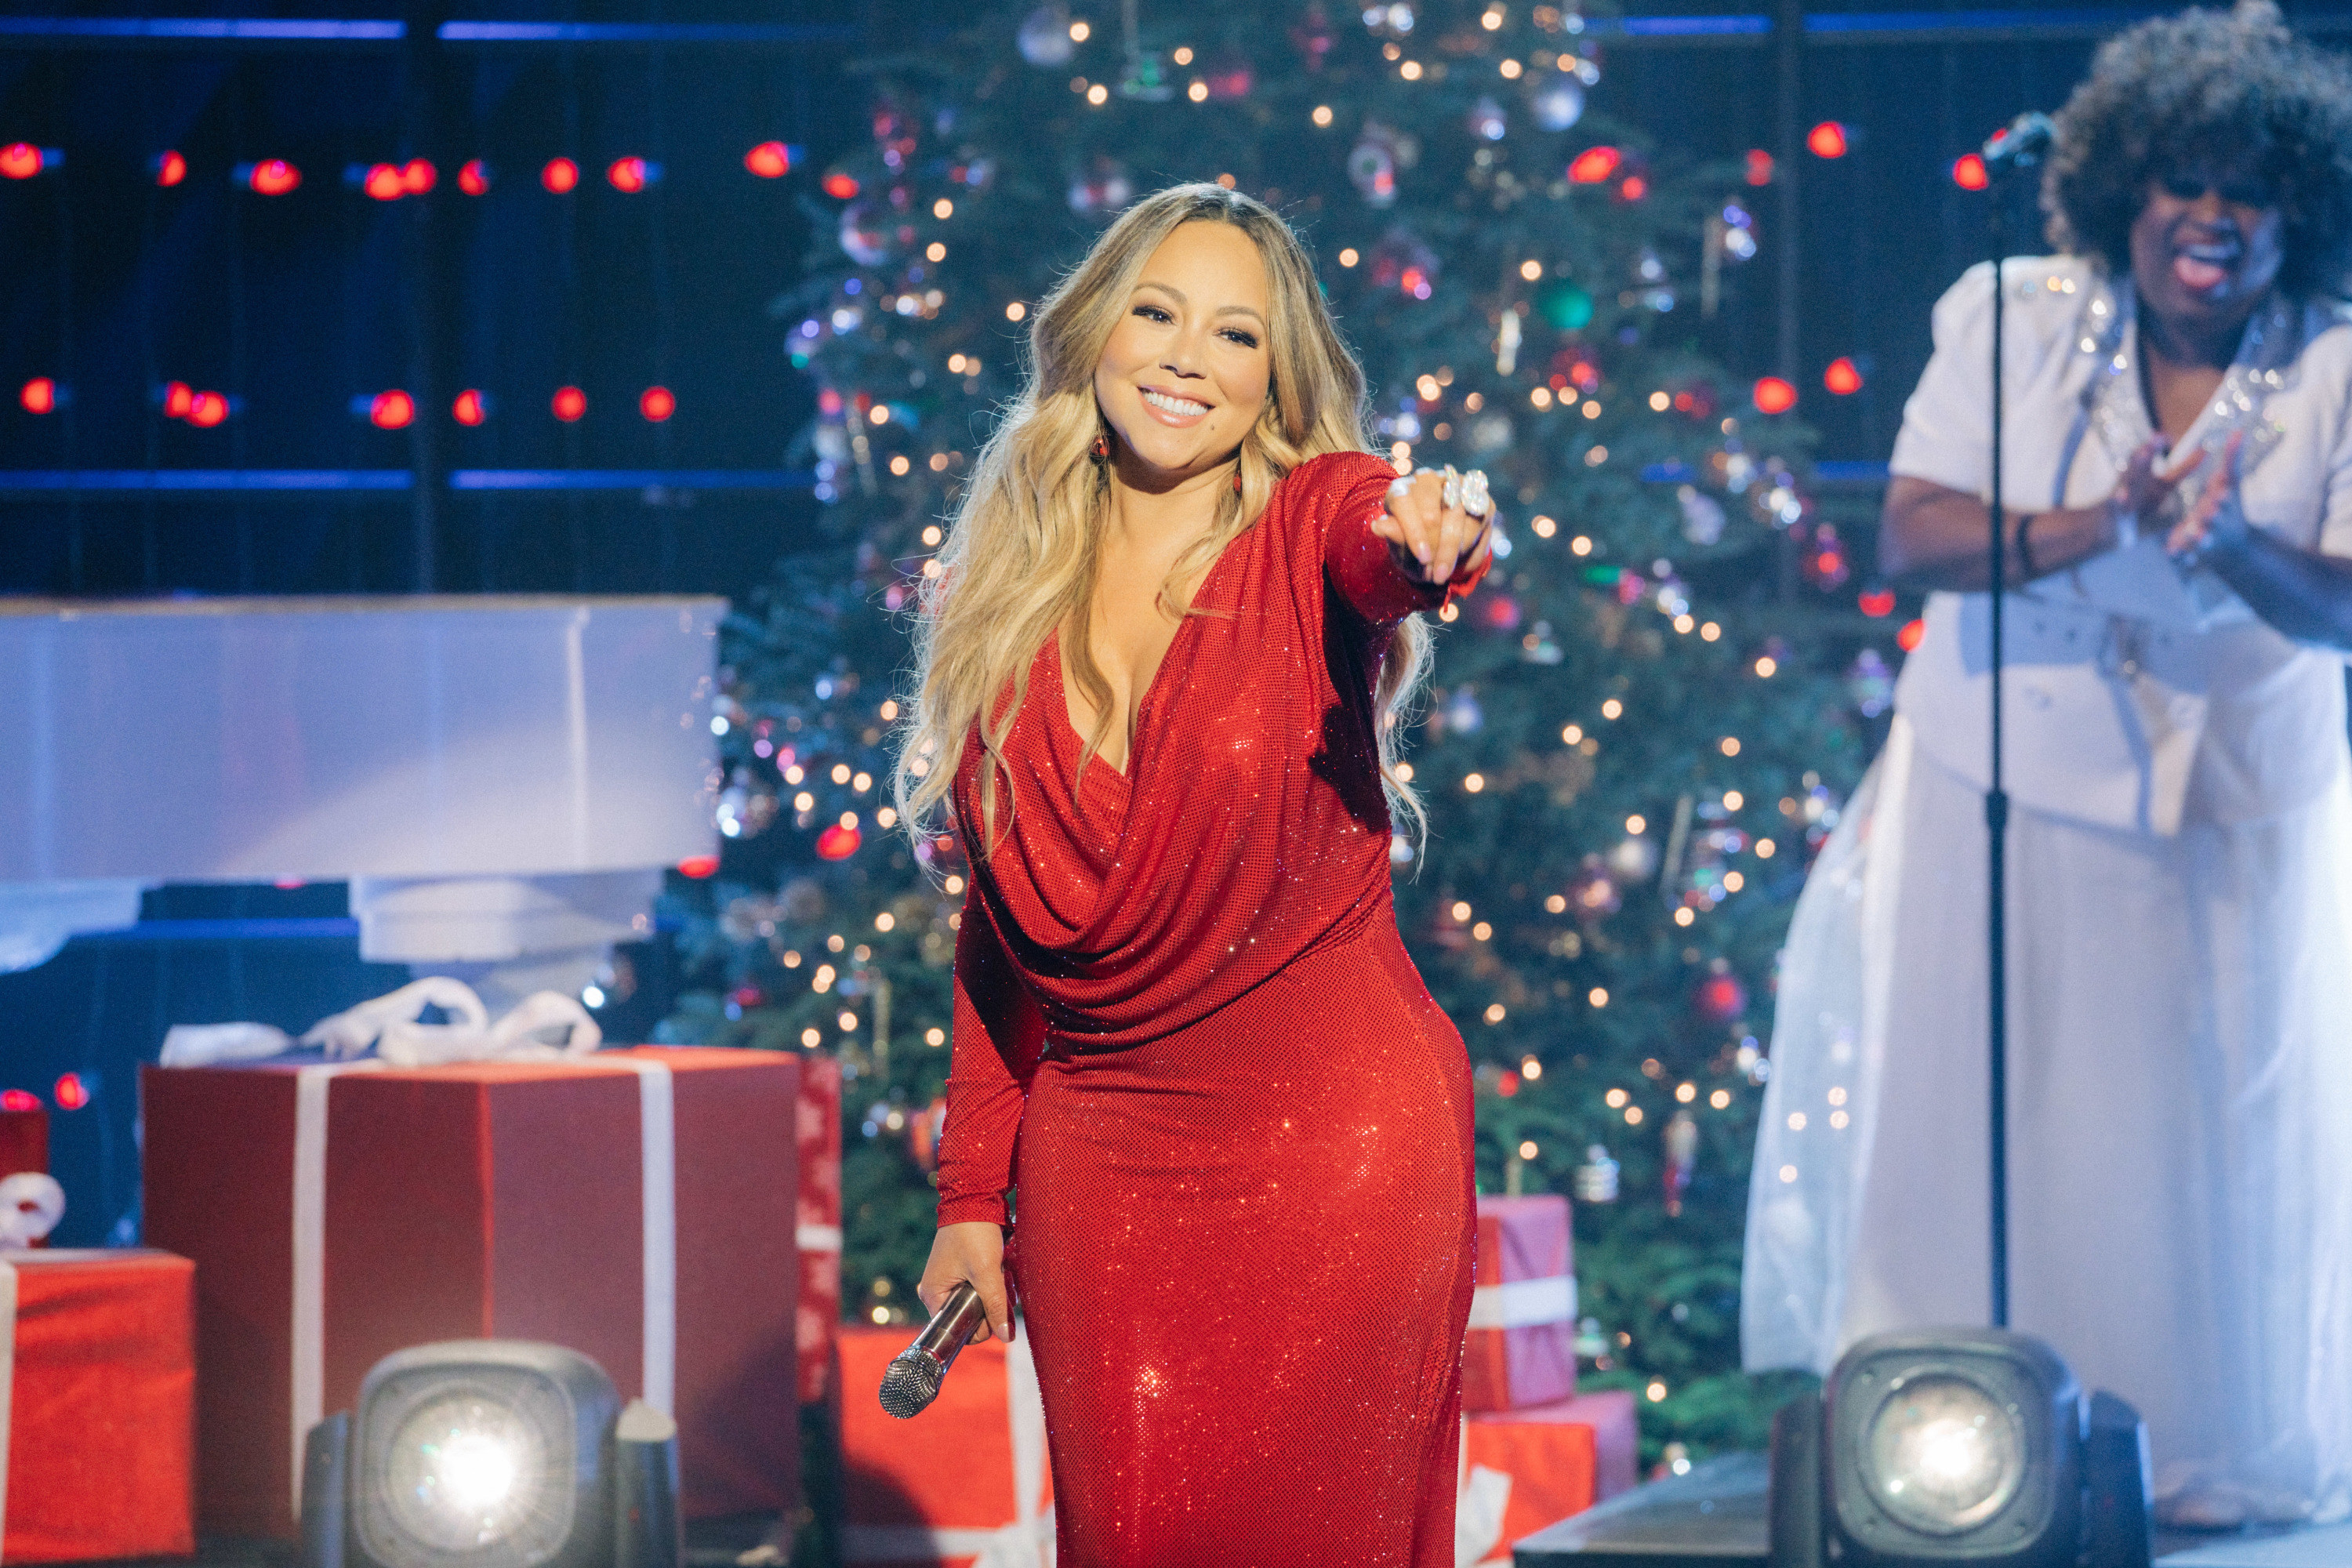 Mariah smiling and performing onstage